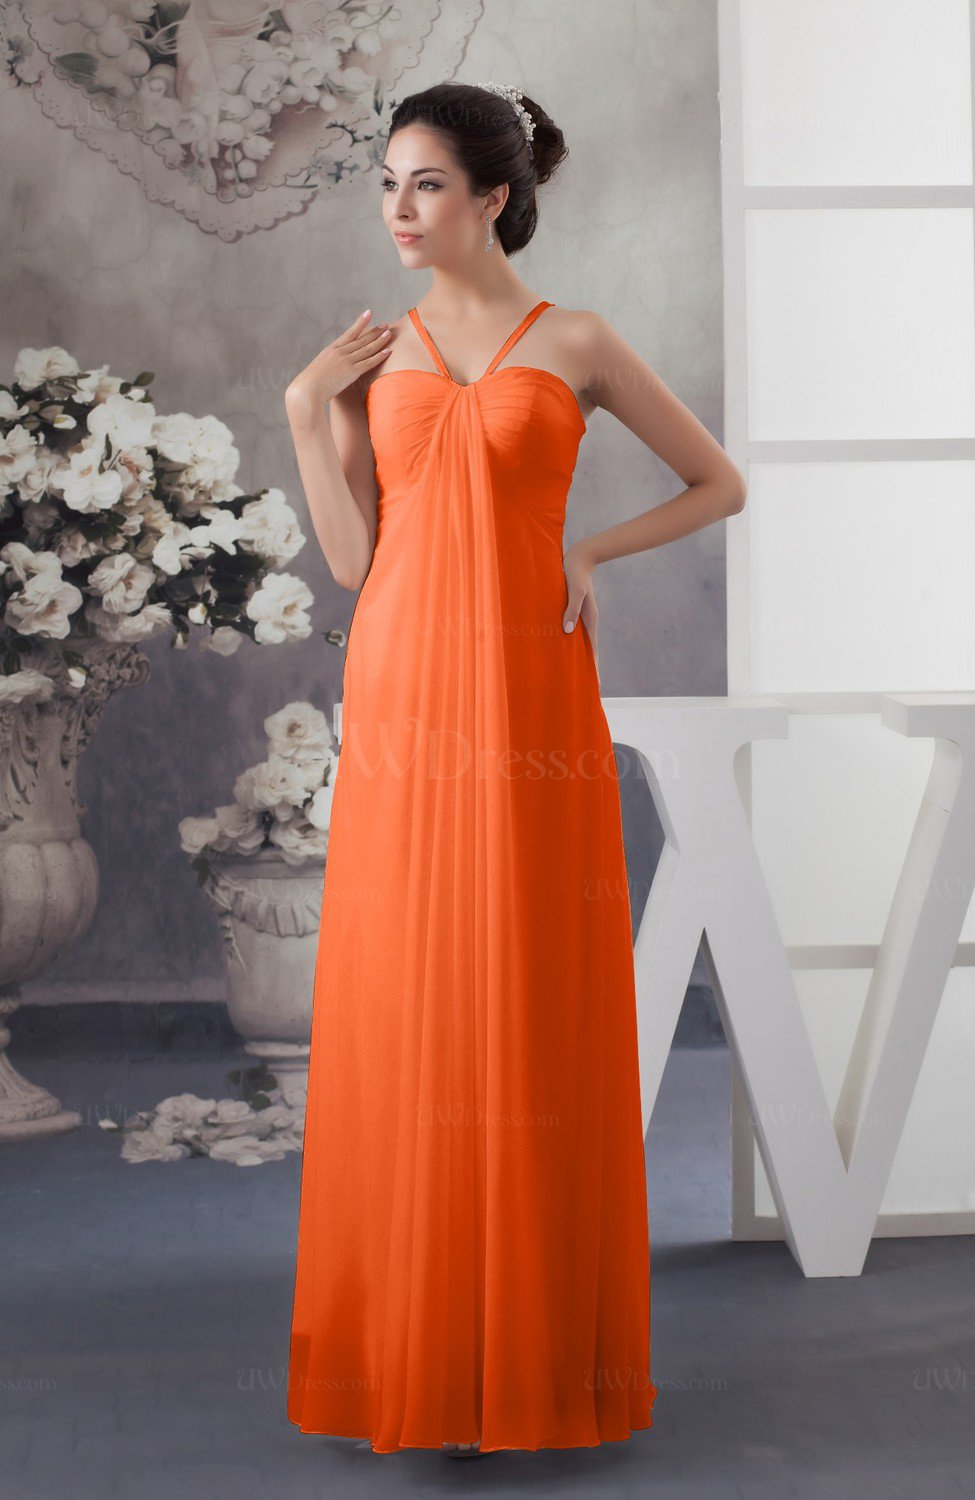 Chiffon Bridesmaid Dress Beach Elegant Casual Pee Simple Low Back A Line